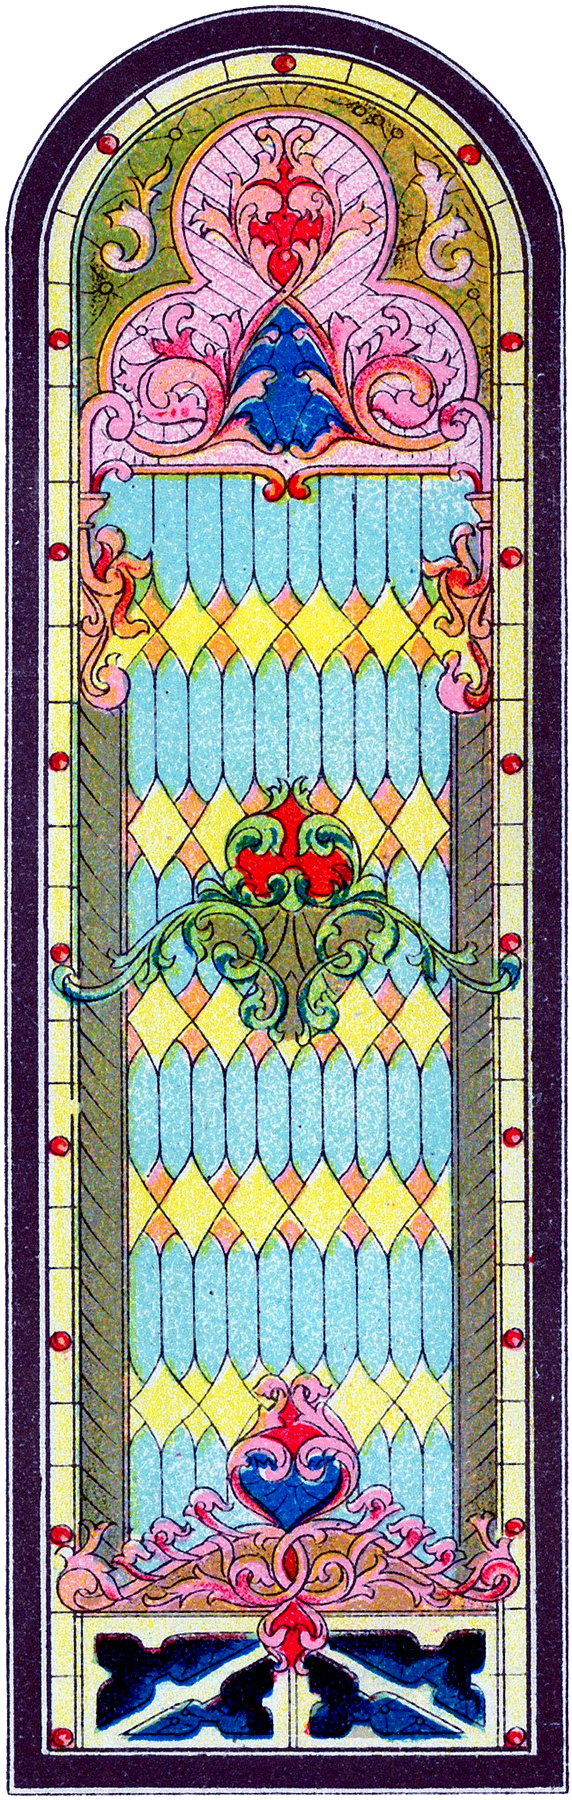 Stained Glass Church Window Image The Graphics Fairy